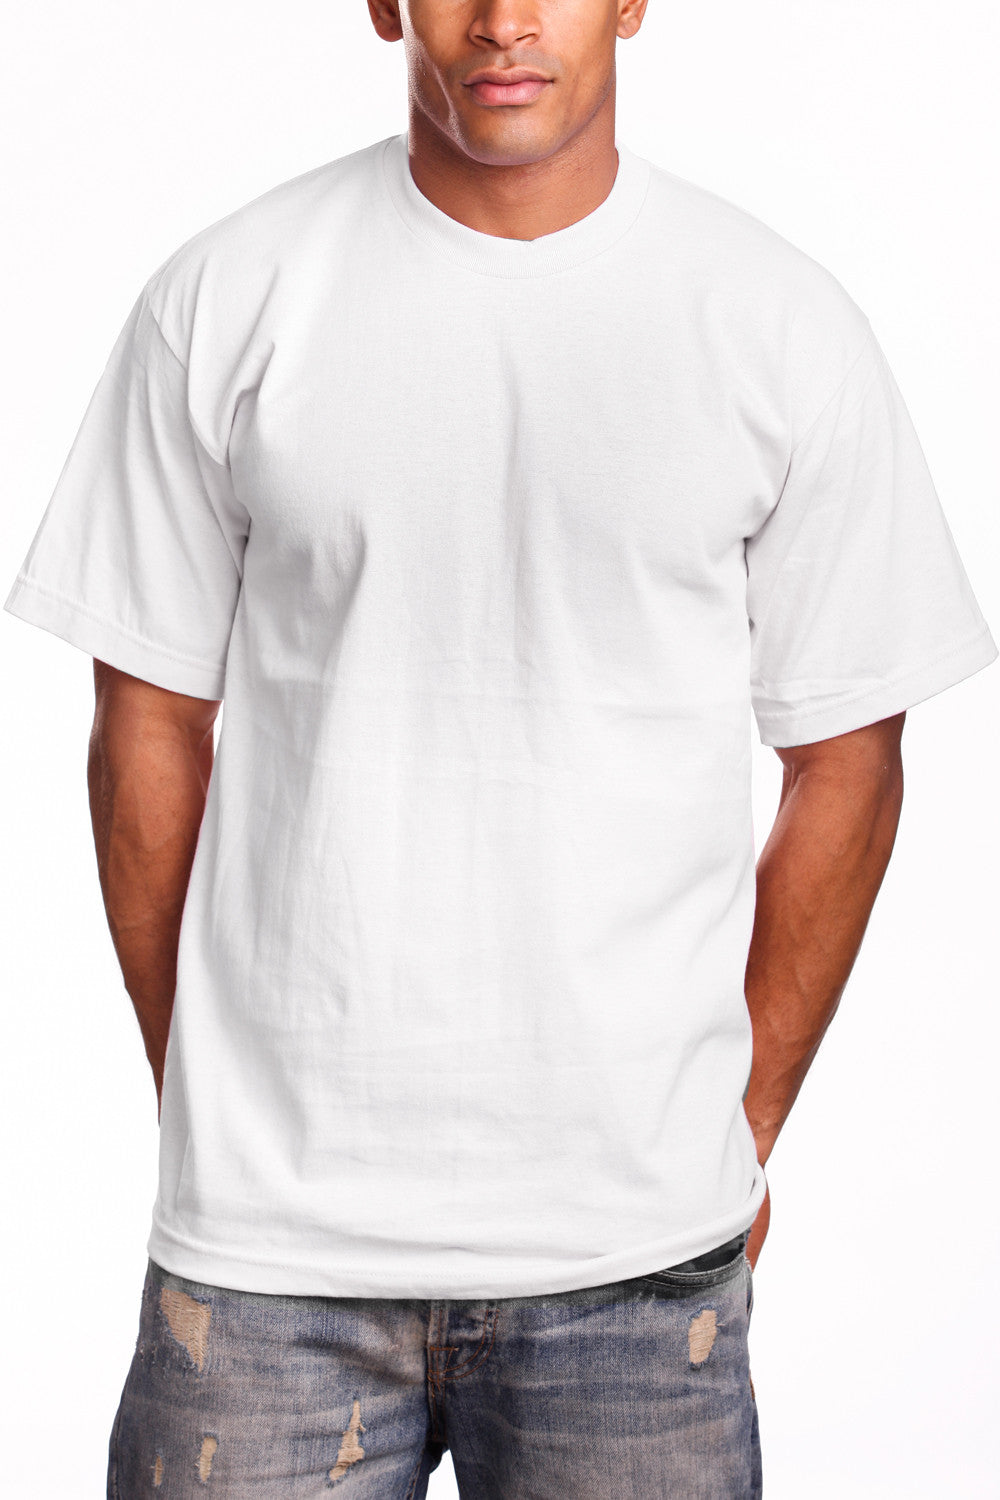 Mens Super Heavy T-Shirt Tee Shirts Tall Size White